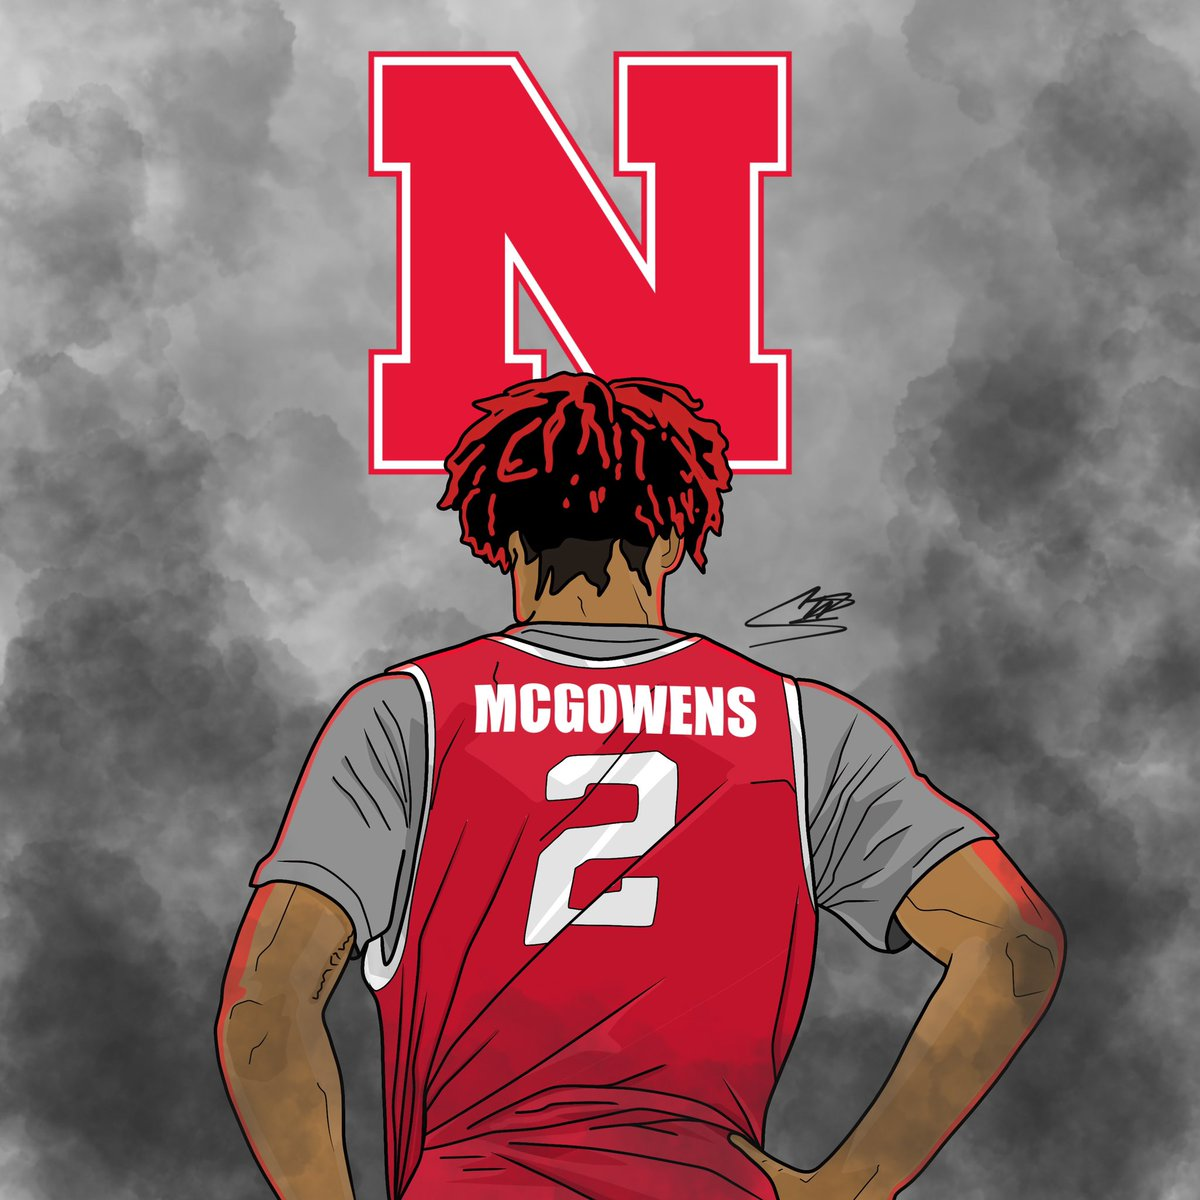 COMMITTED #GBR🌽 #PuBd